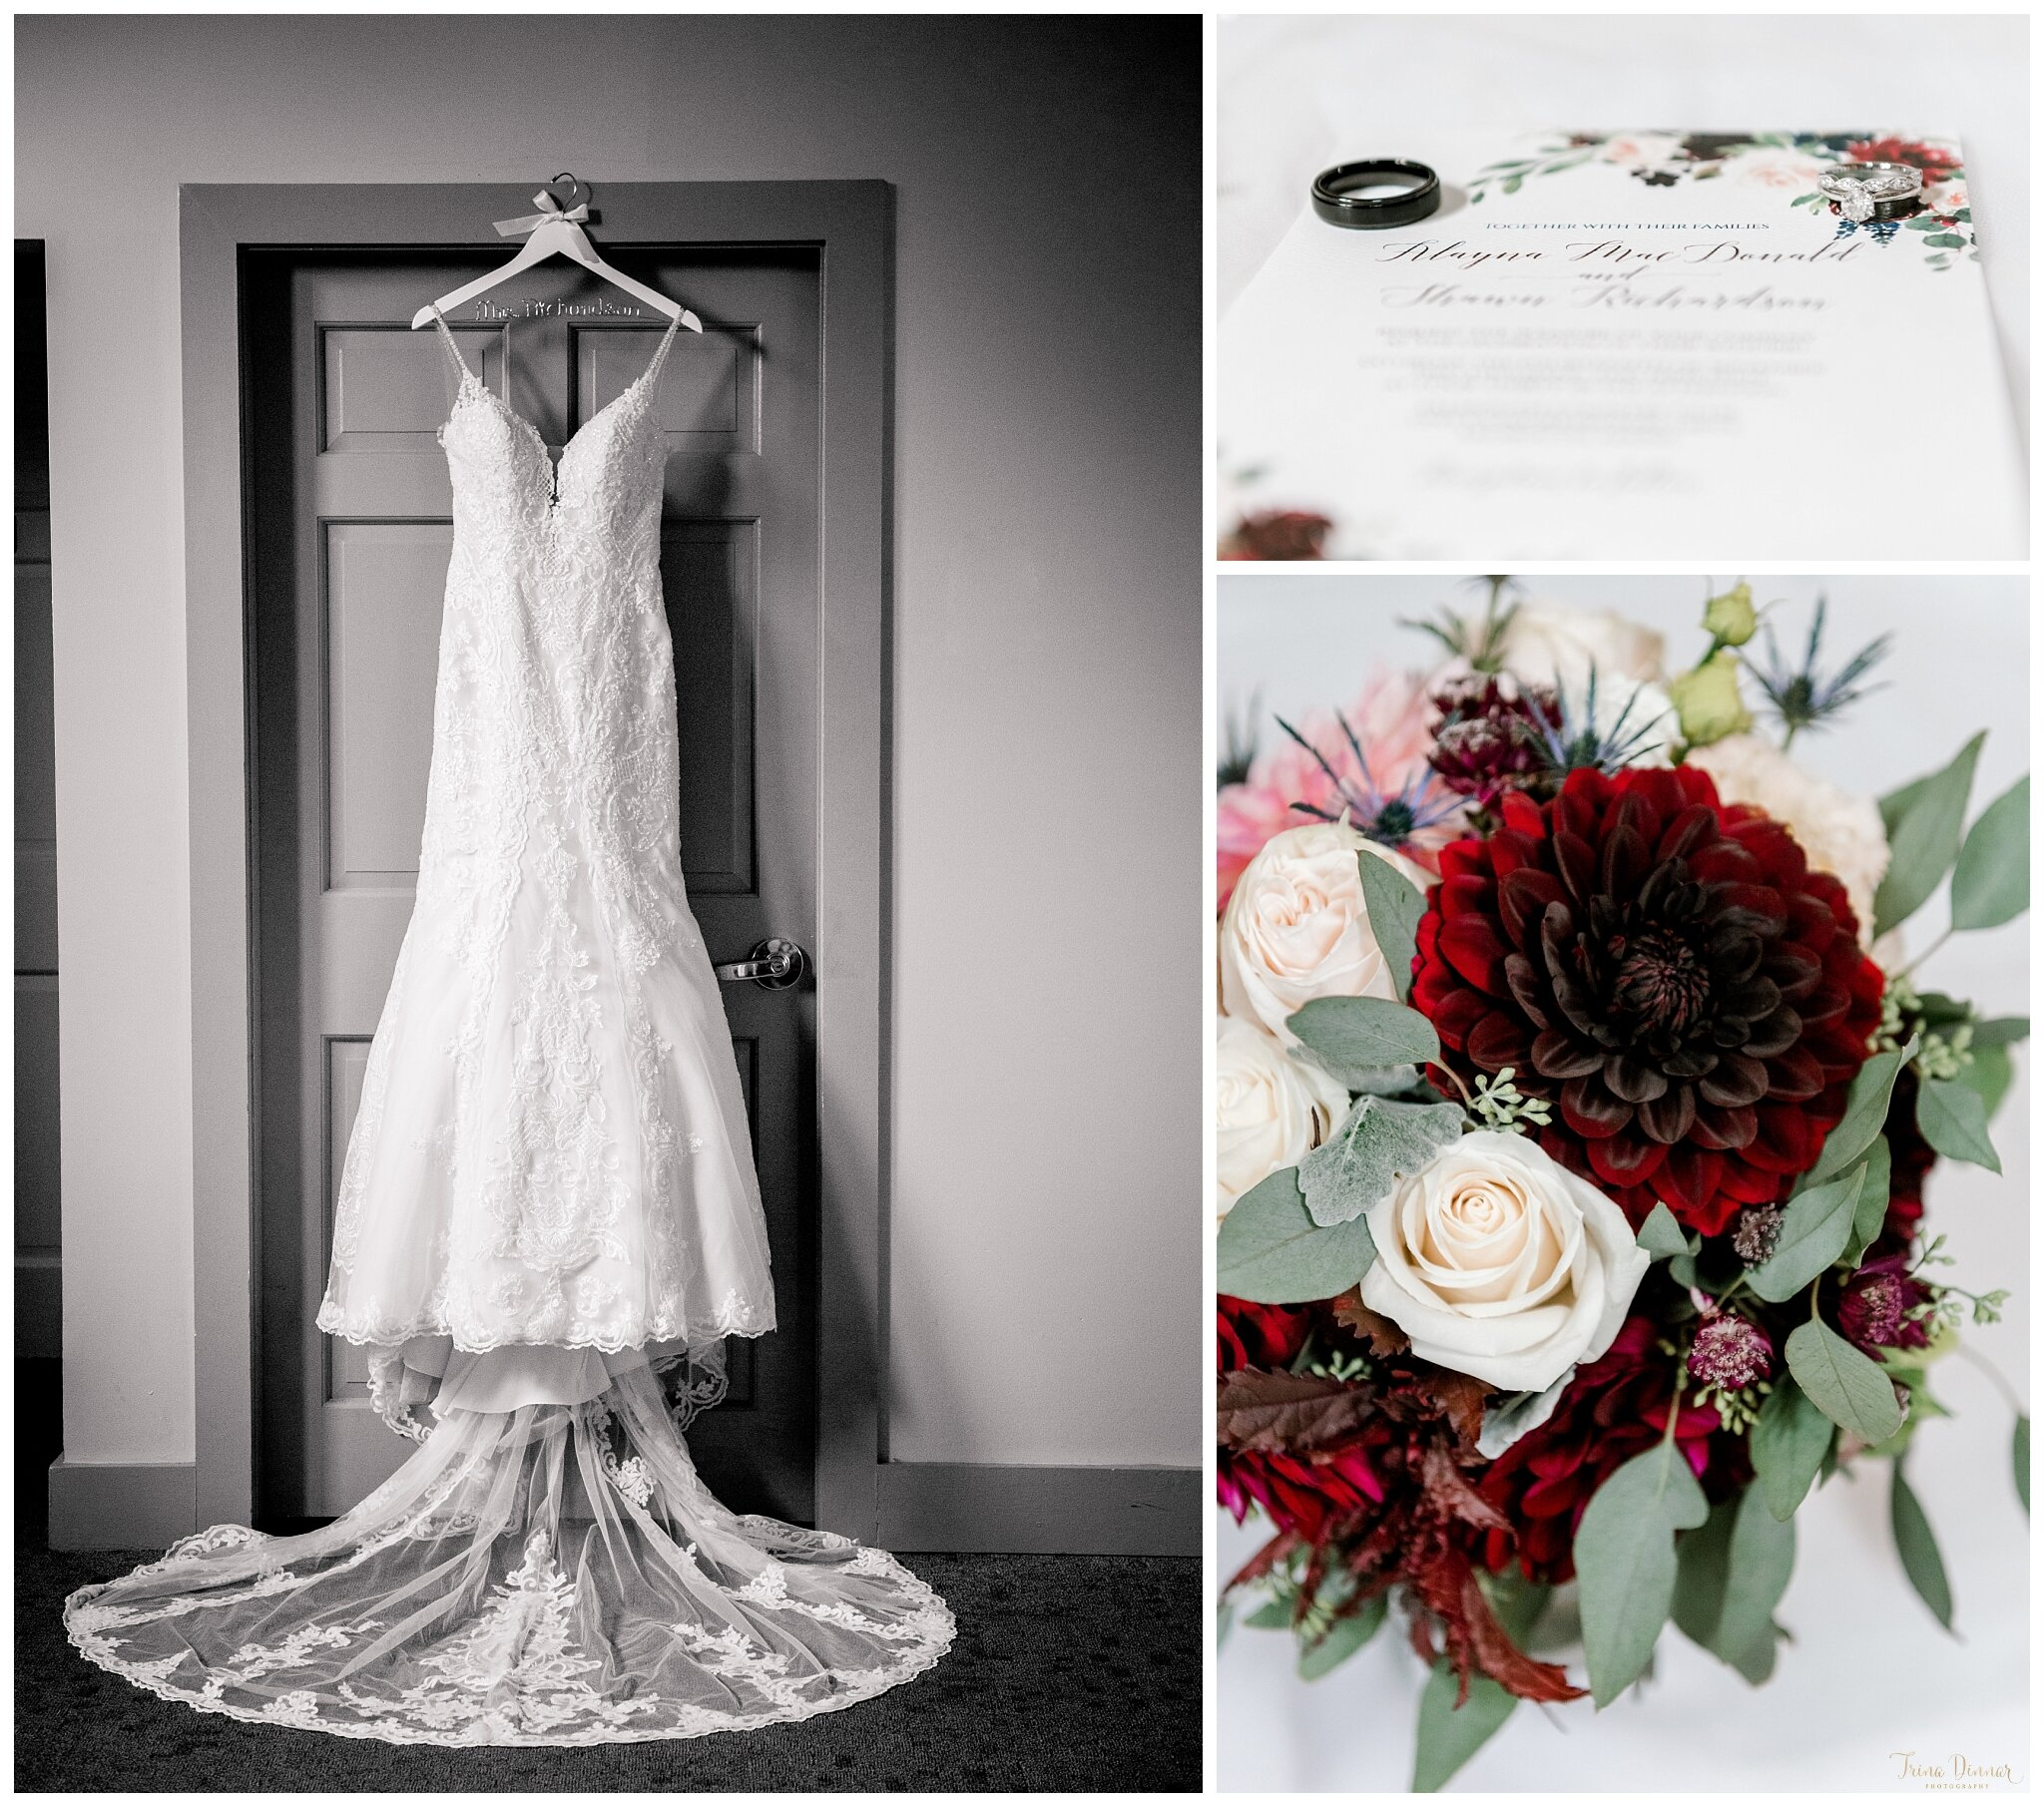 Classic Black and White Wedding Dress by Blush Bridal in Portland, Maine